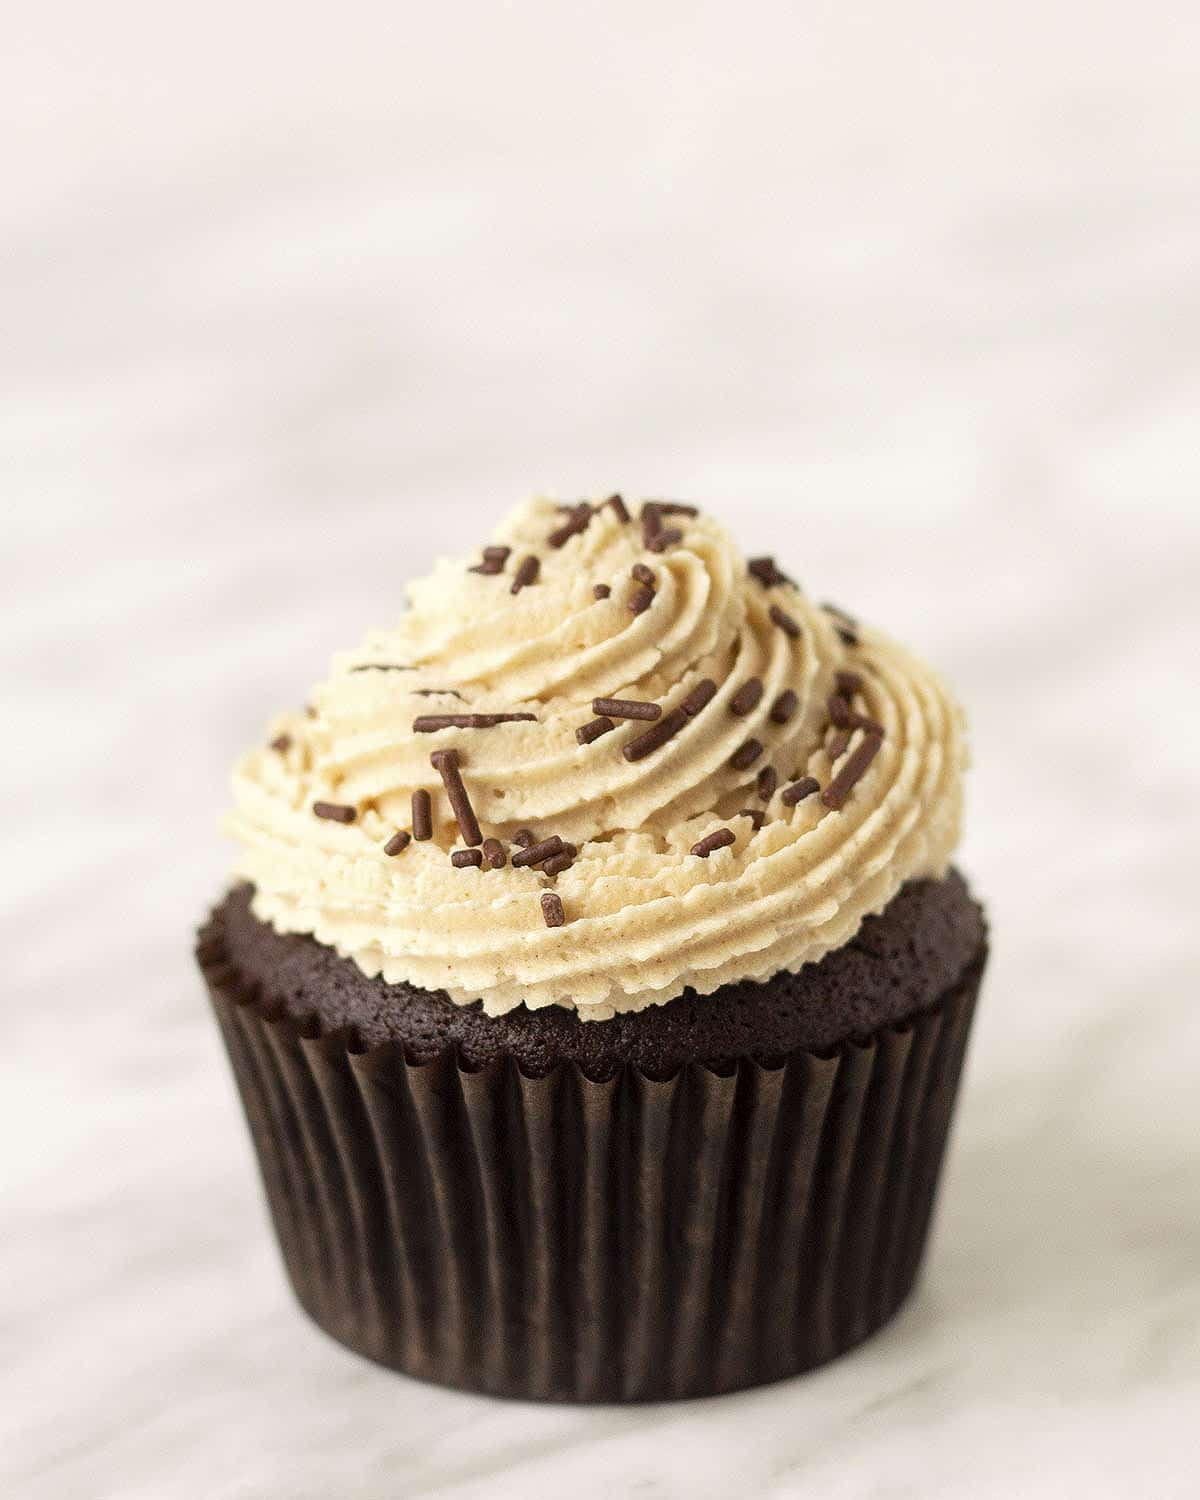 A chocolate cupcake topped with peanut butter icing and chocolate sprinkles.